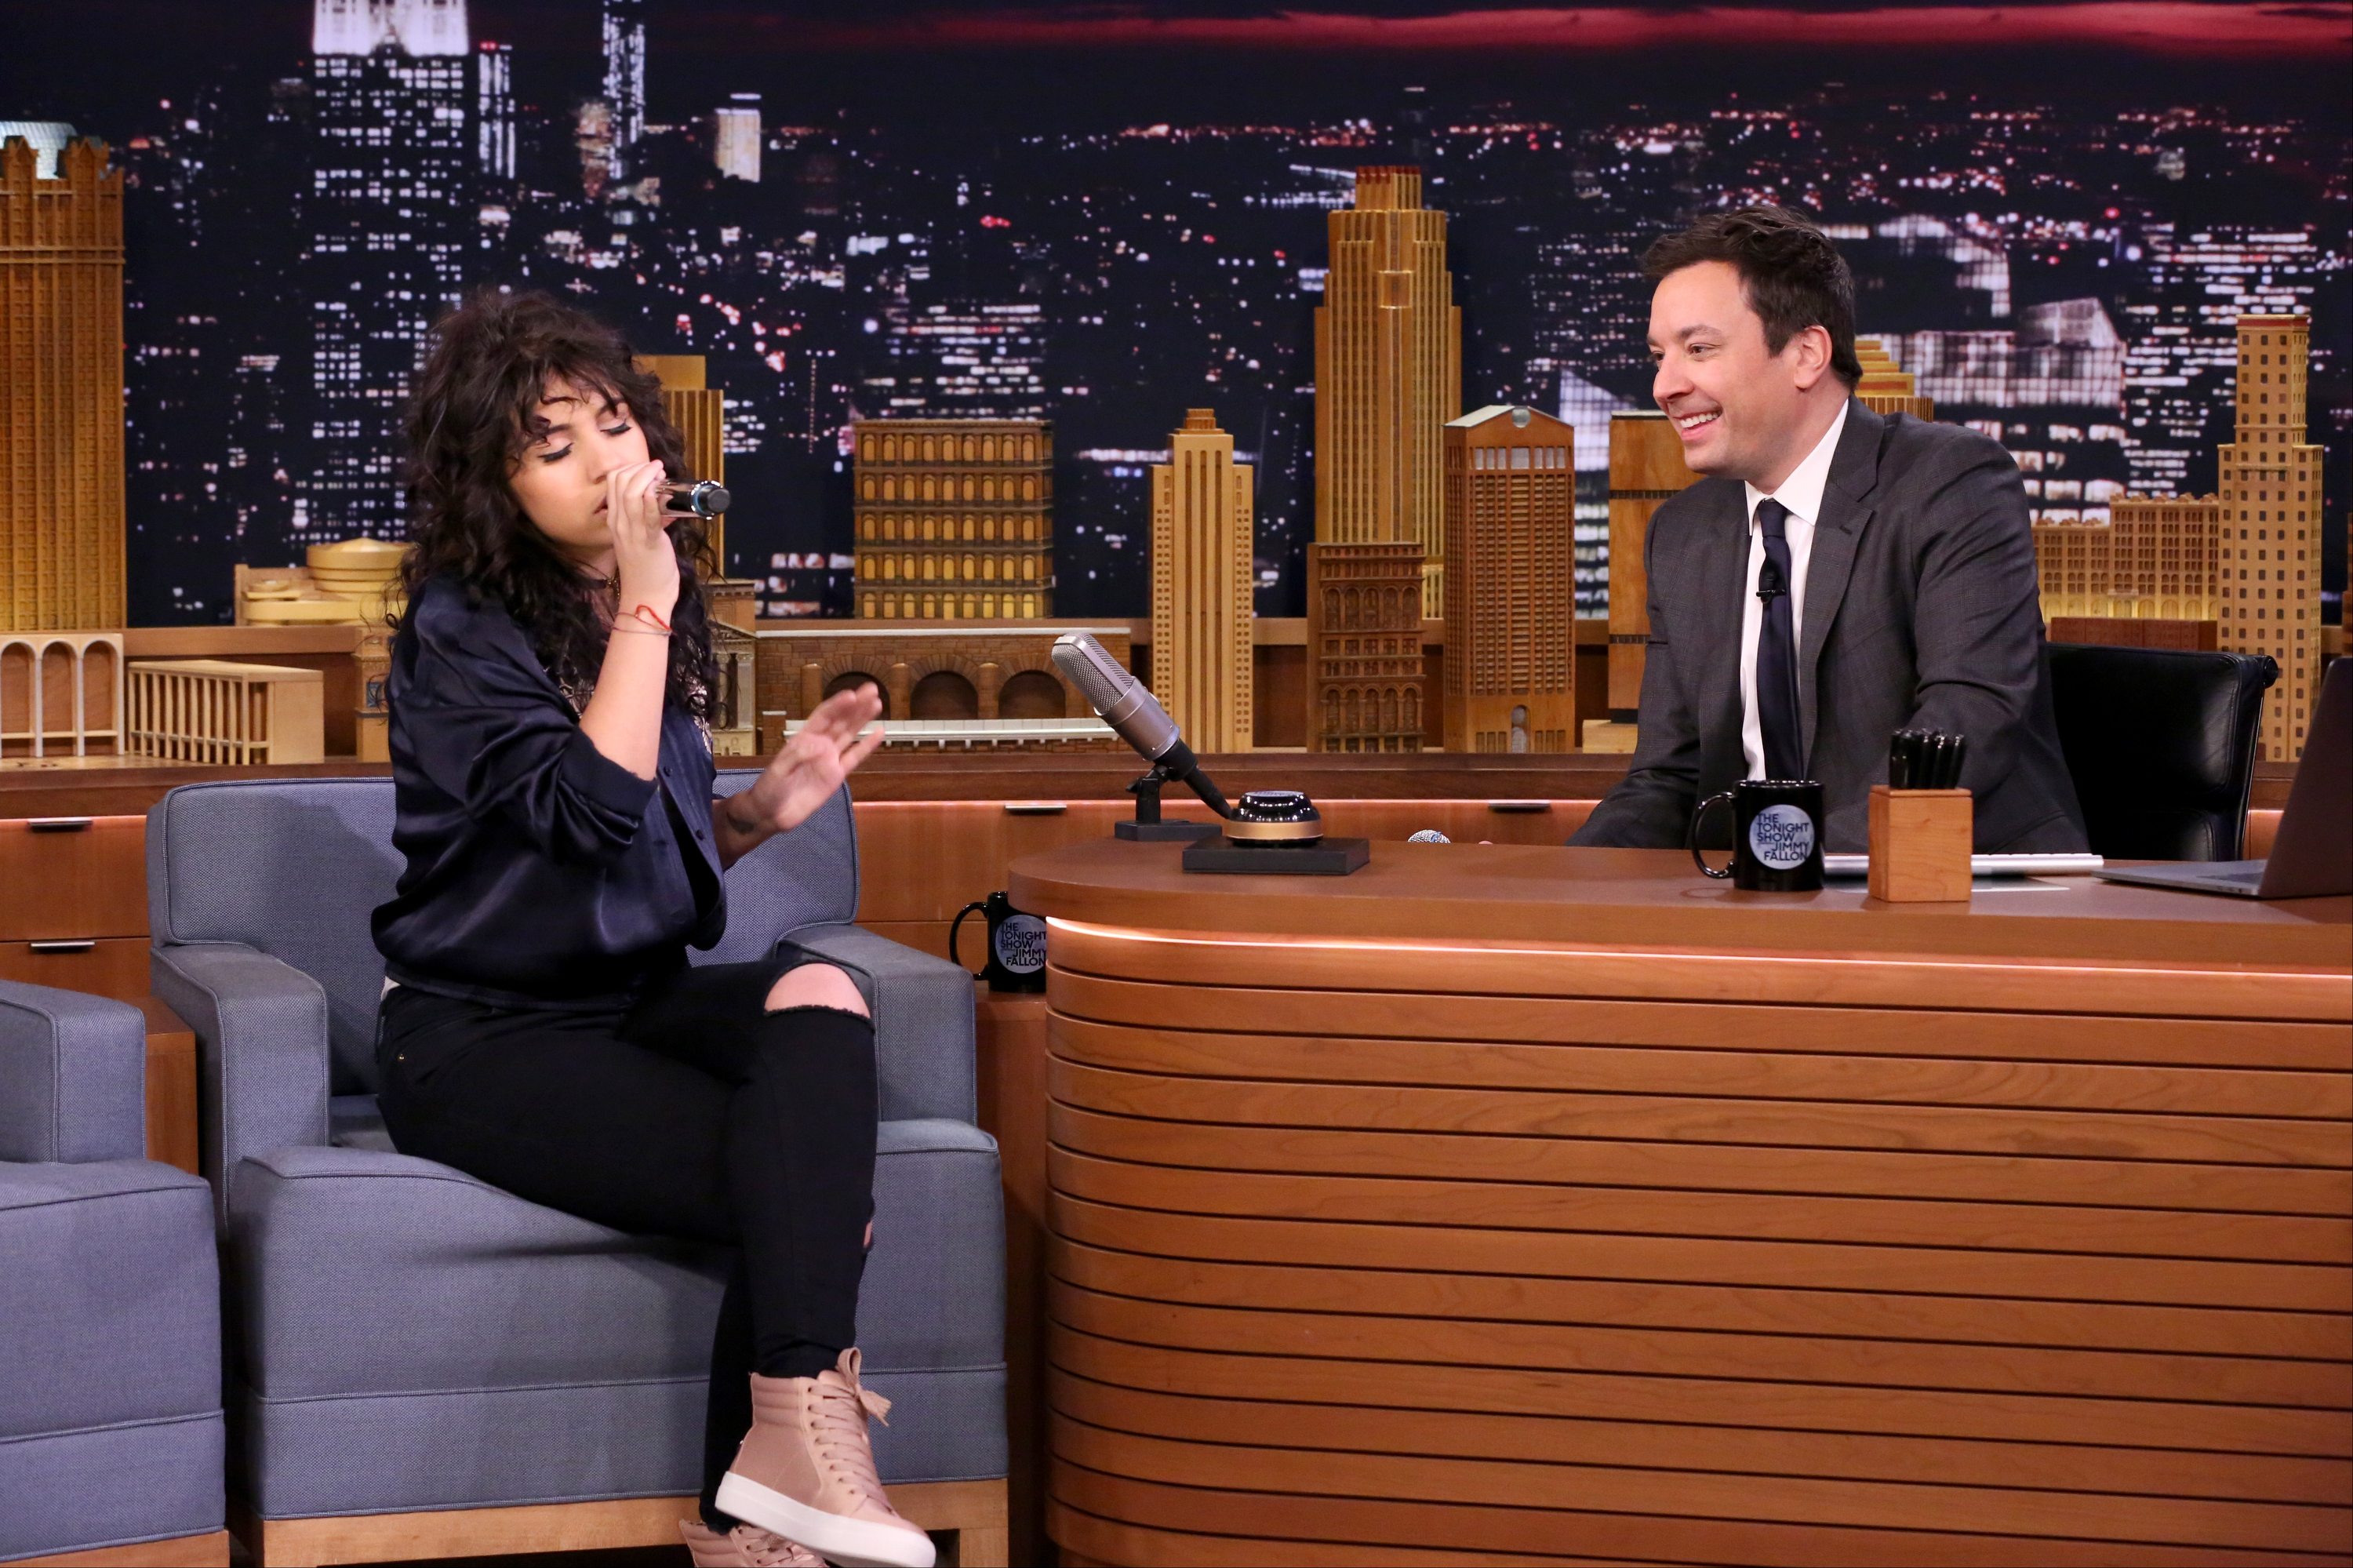 Alessia Cara's Lorde impression will blow you away